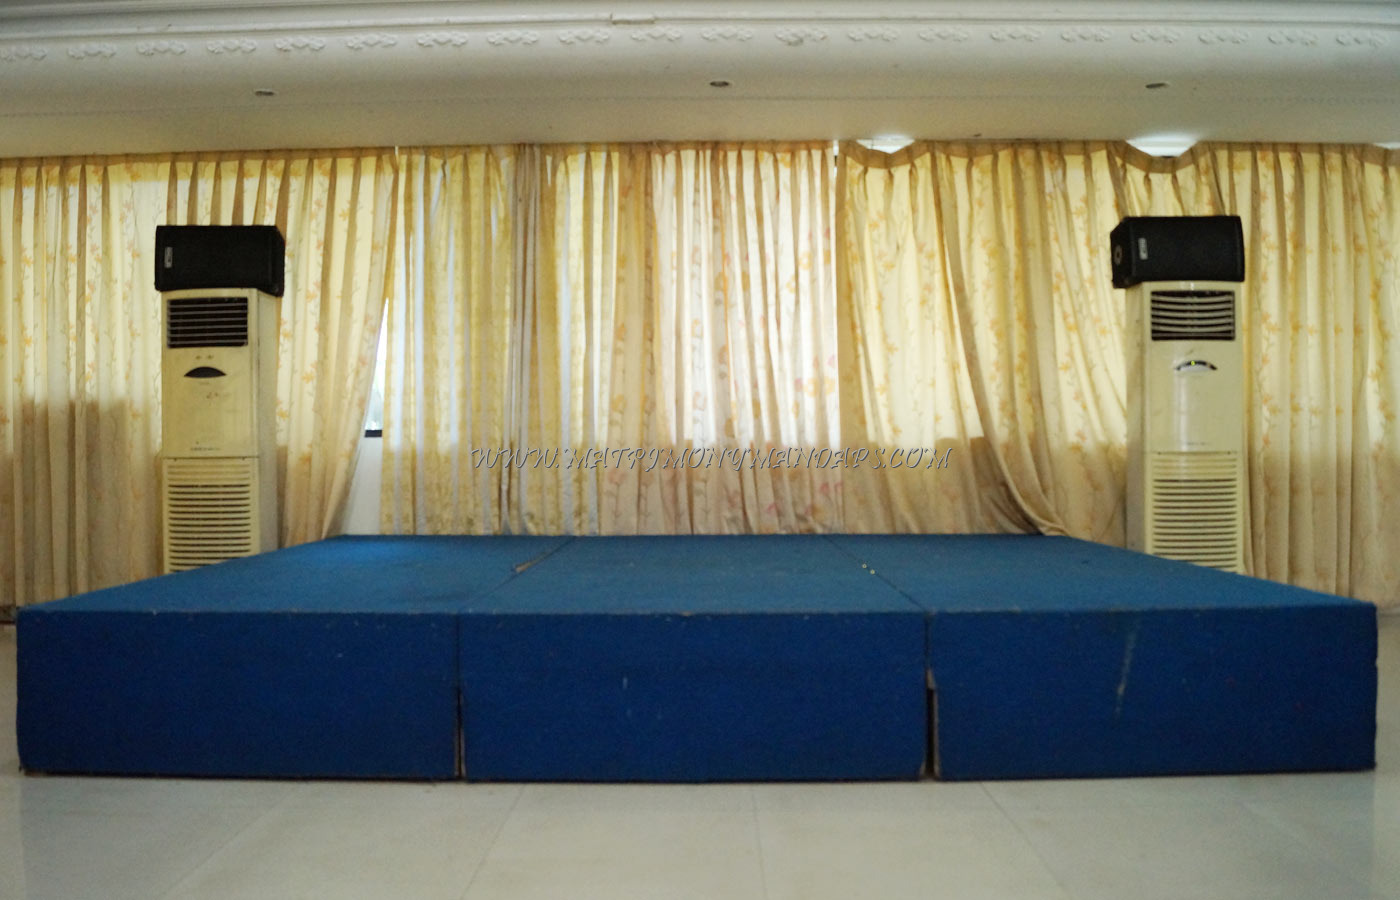 Find the availability of the Hotel Sabari Park (A/C) in Karamana, Trivandrum and avail special offers